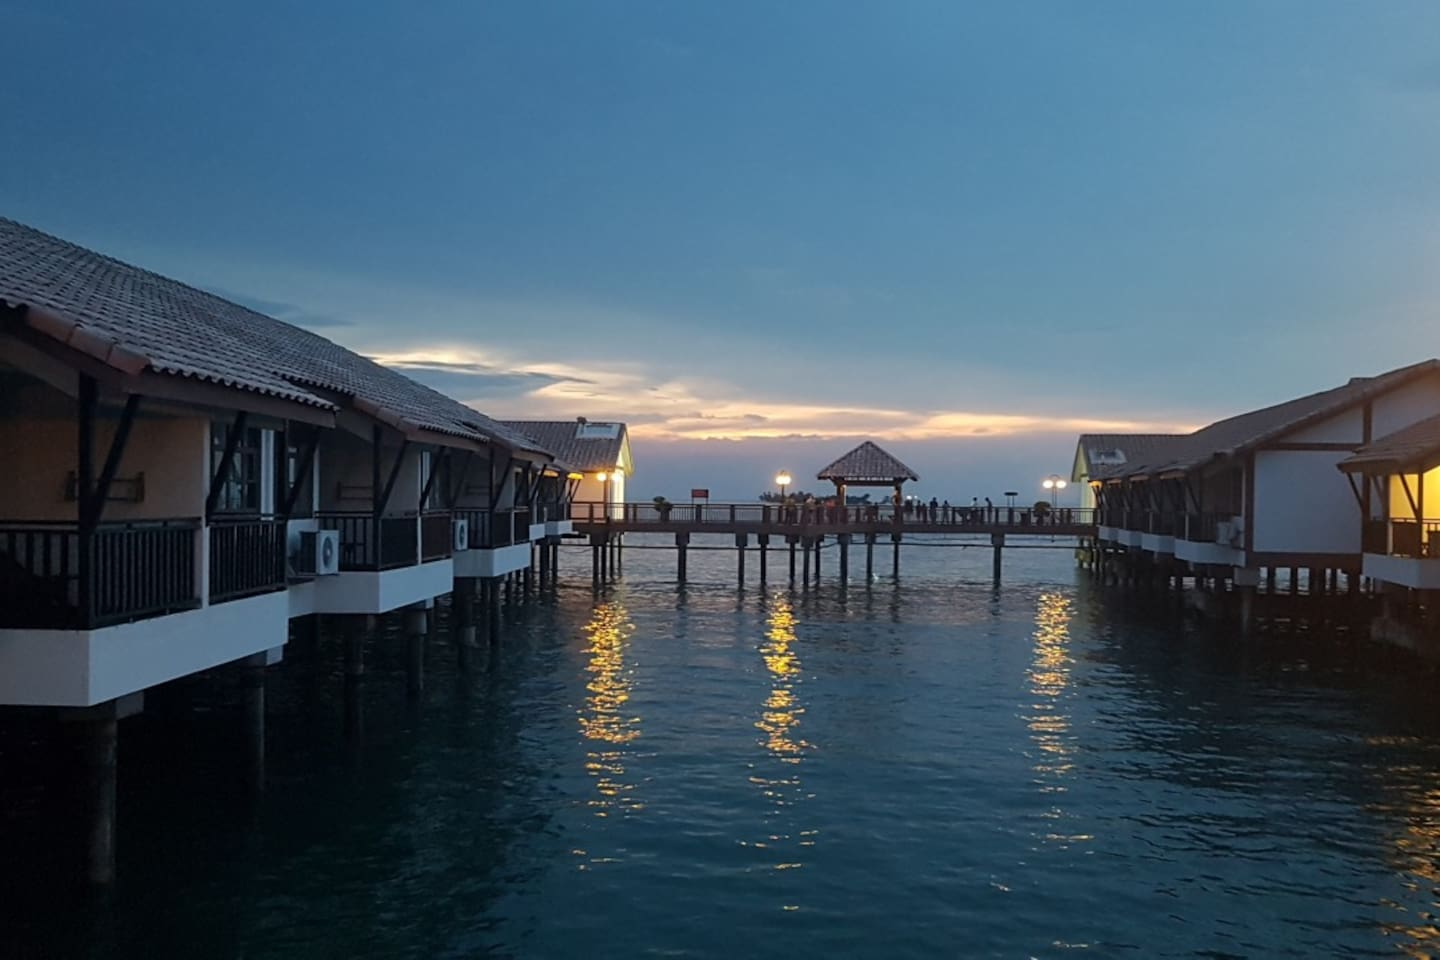 Sunset @ Water Chalet